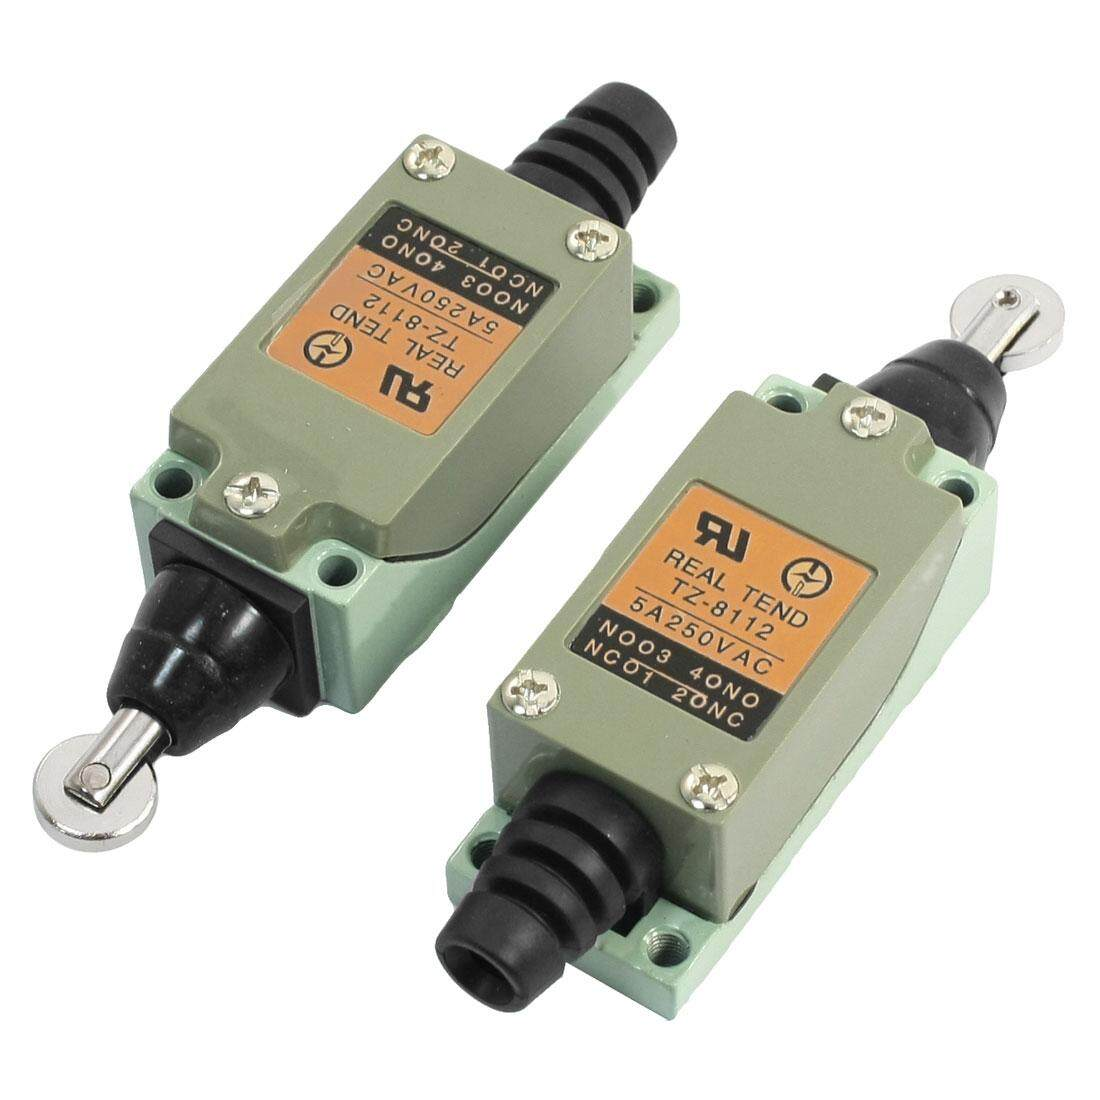 Sell Axa Momentary Parallel Cheapest Best Quality My Store 110mm Wire Lever Microswitch Tend Myr 70